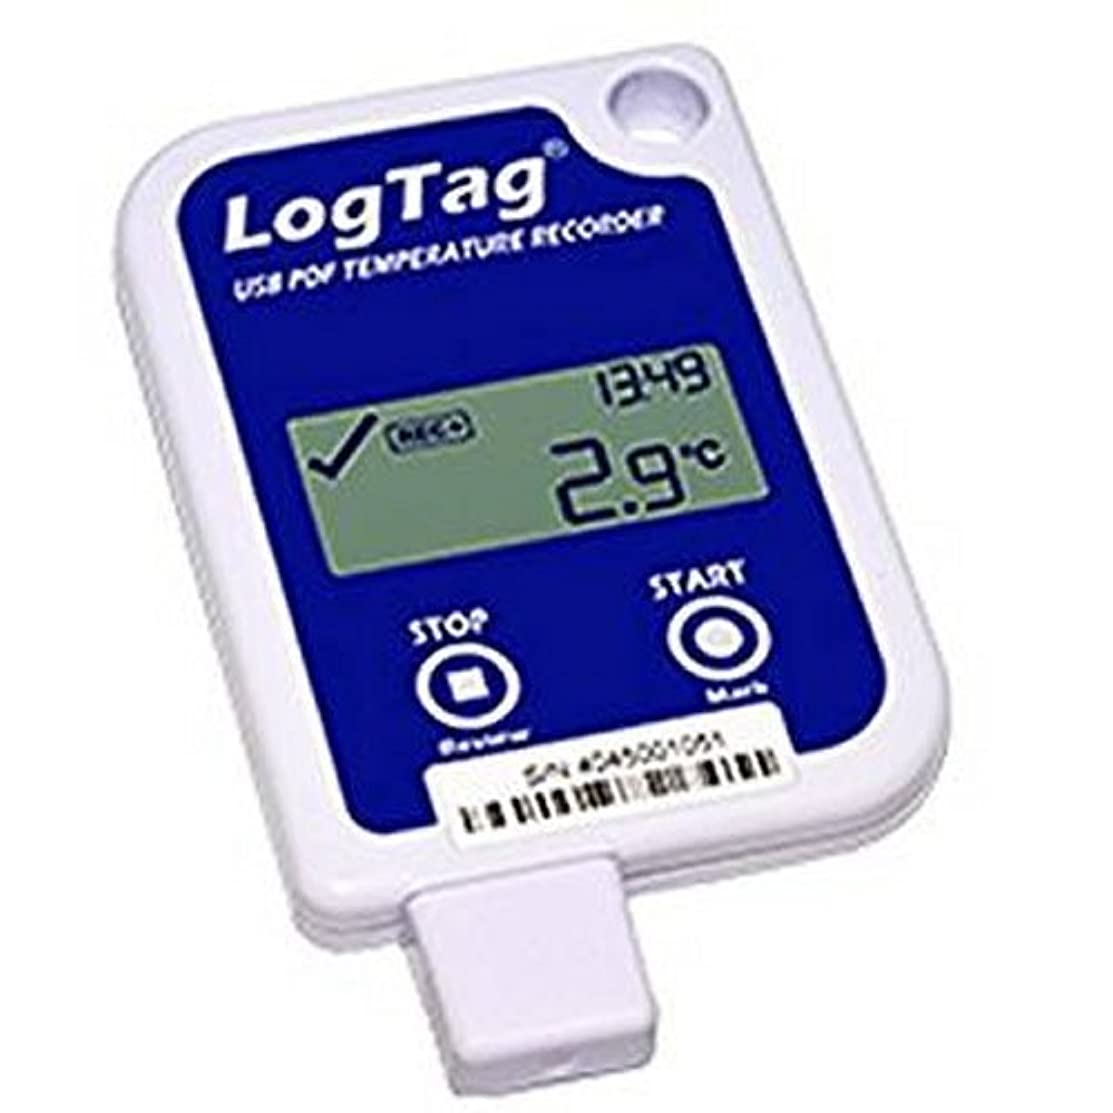 LogTag UTRID-16 USB PDF Temp Recorder with NIST Certificate